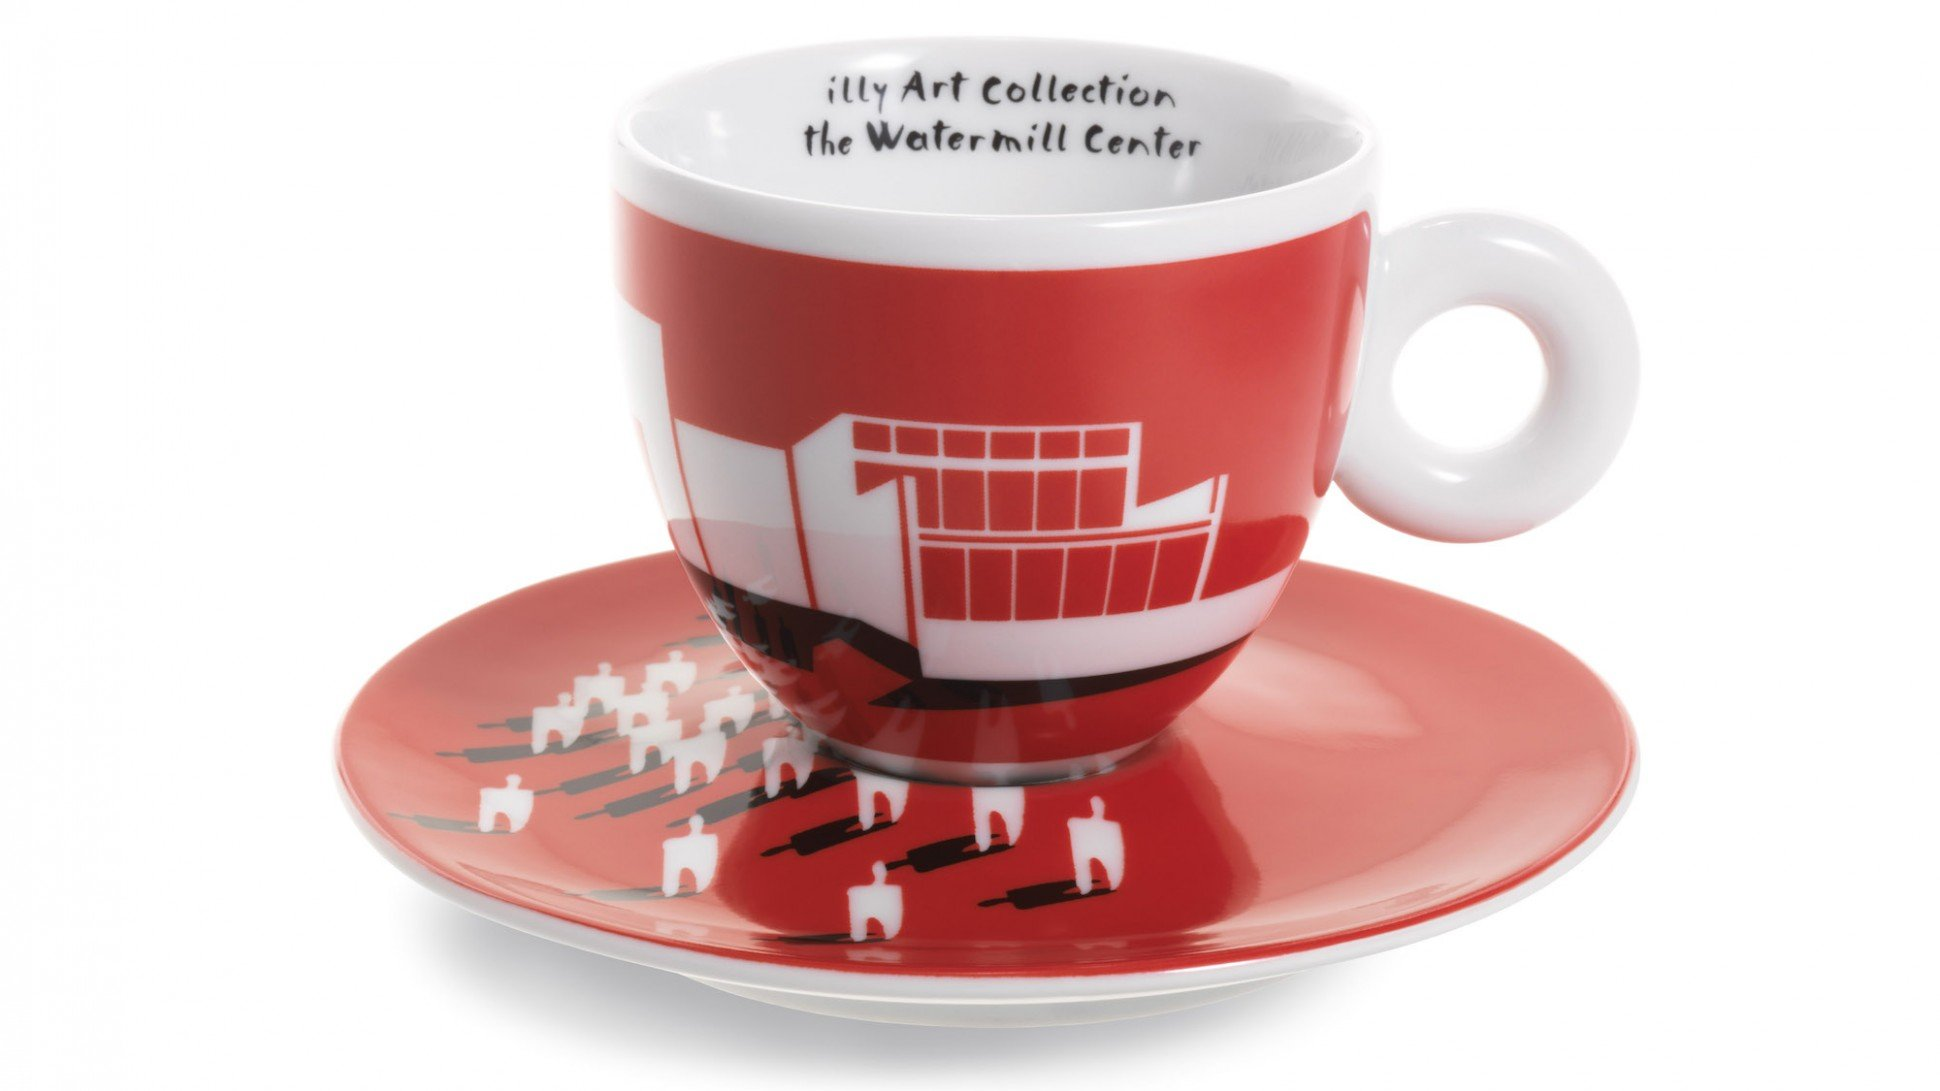 Artist Robert Wilson Creates Cups And Saucers For A